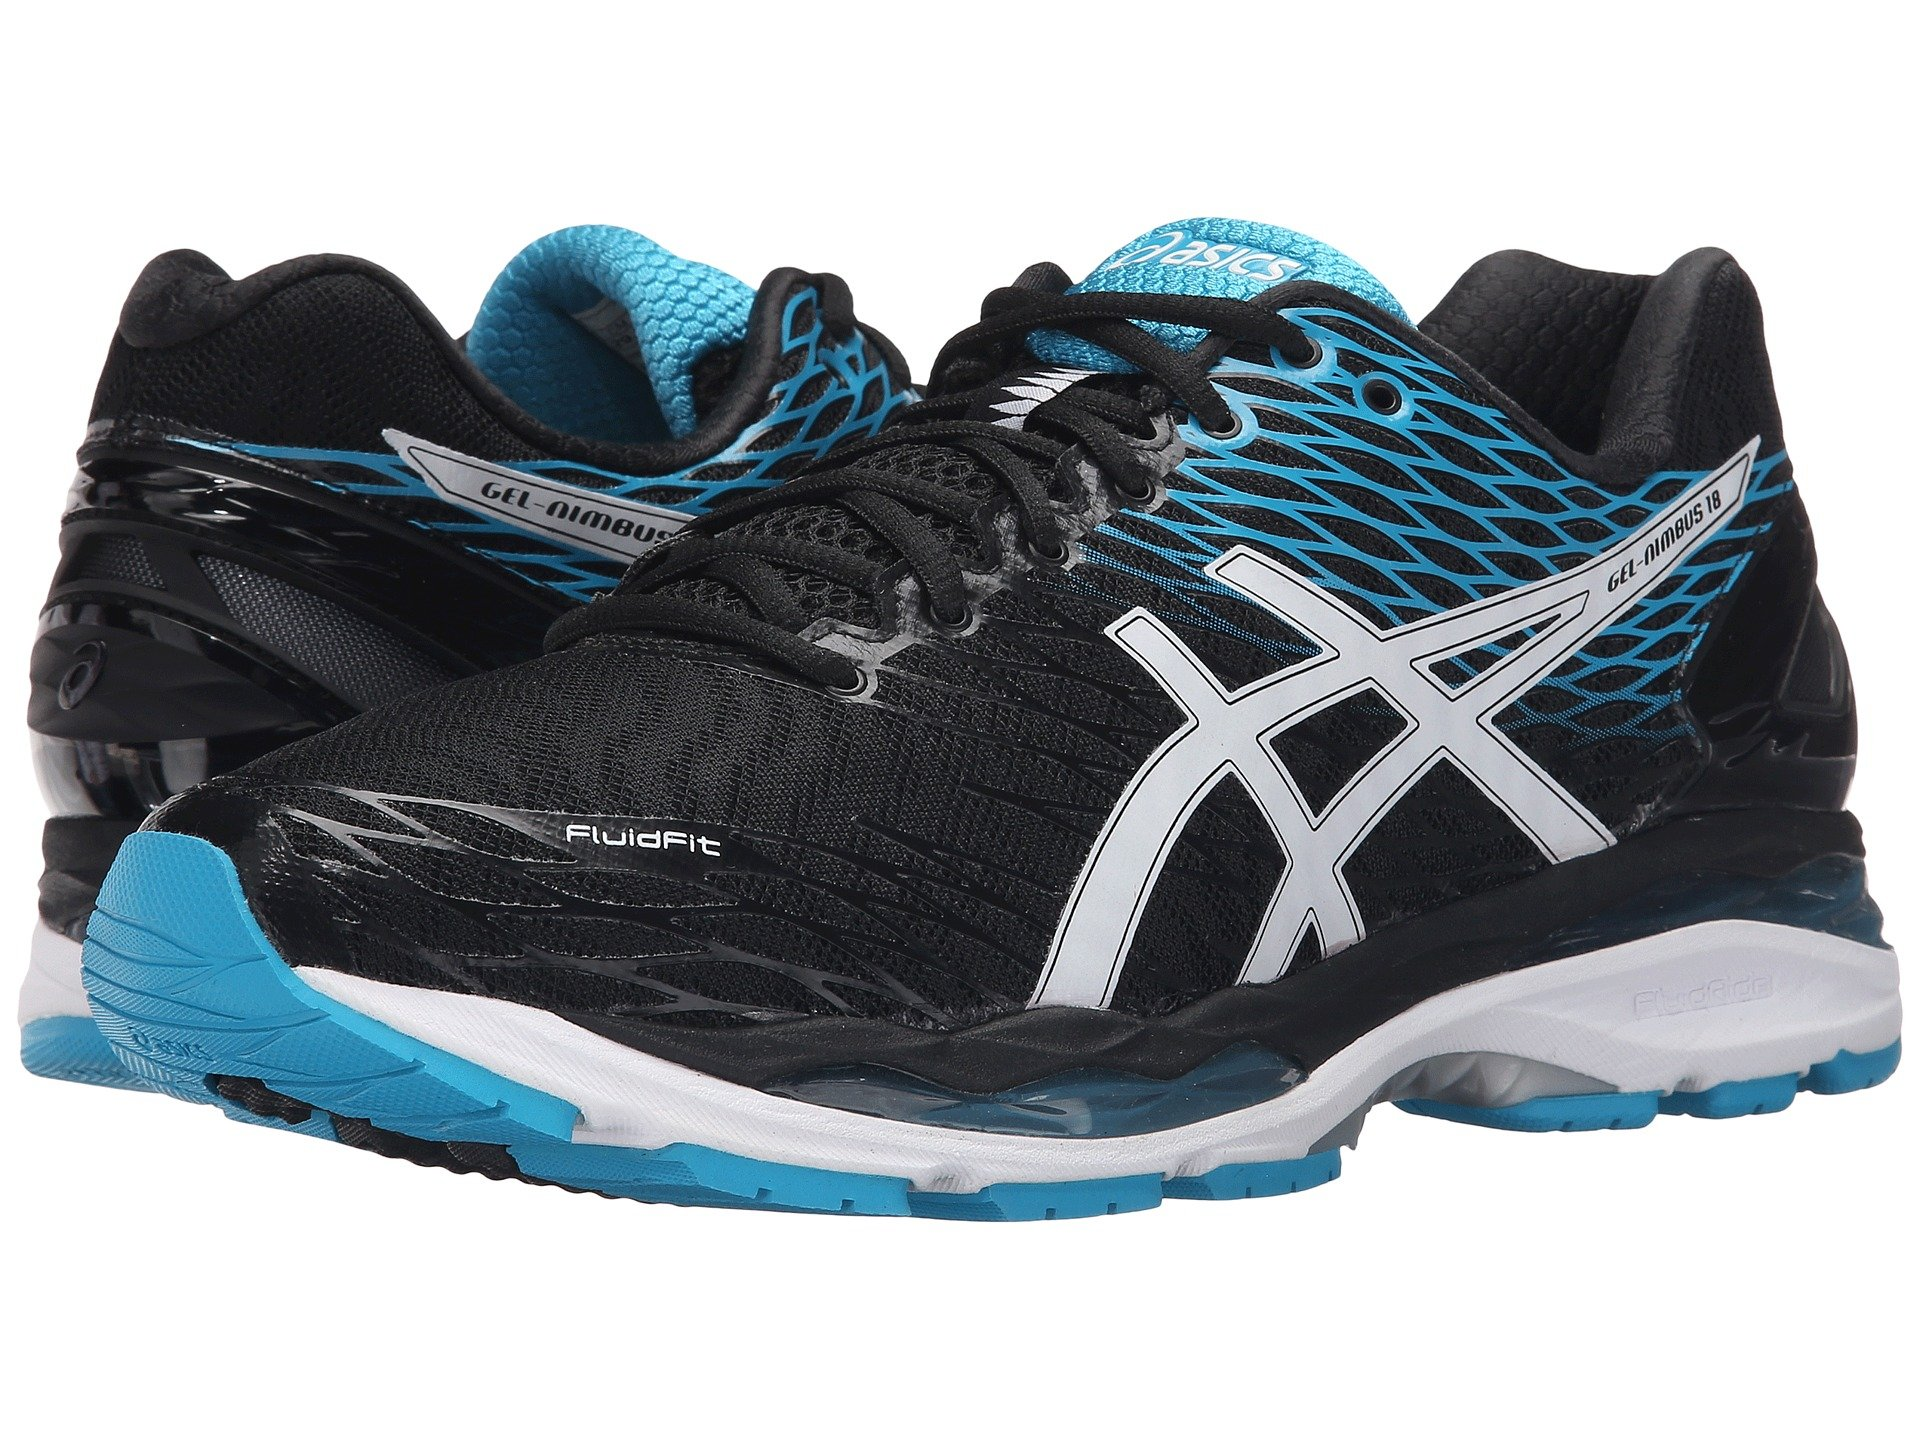 asics gel nimbus 18 at 6pm. Black Bedroom Furniture Sets. Home Design Ideas